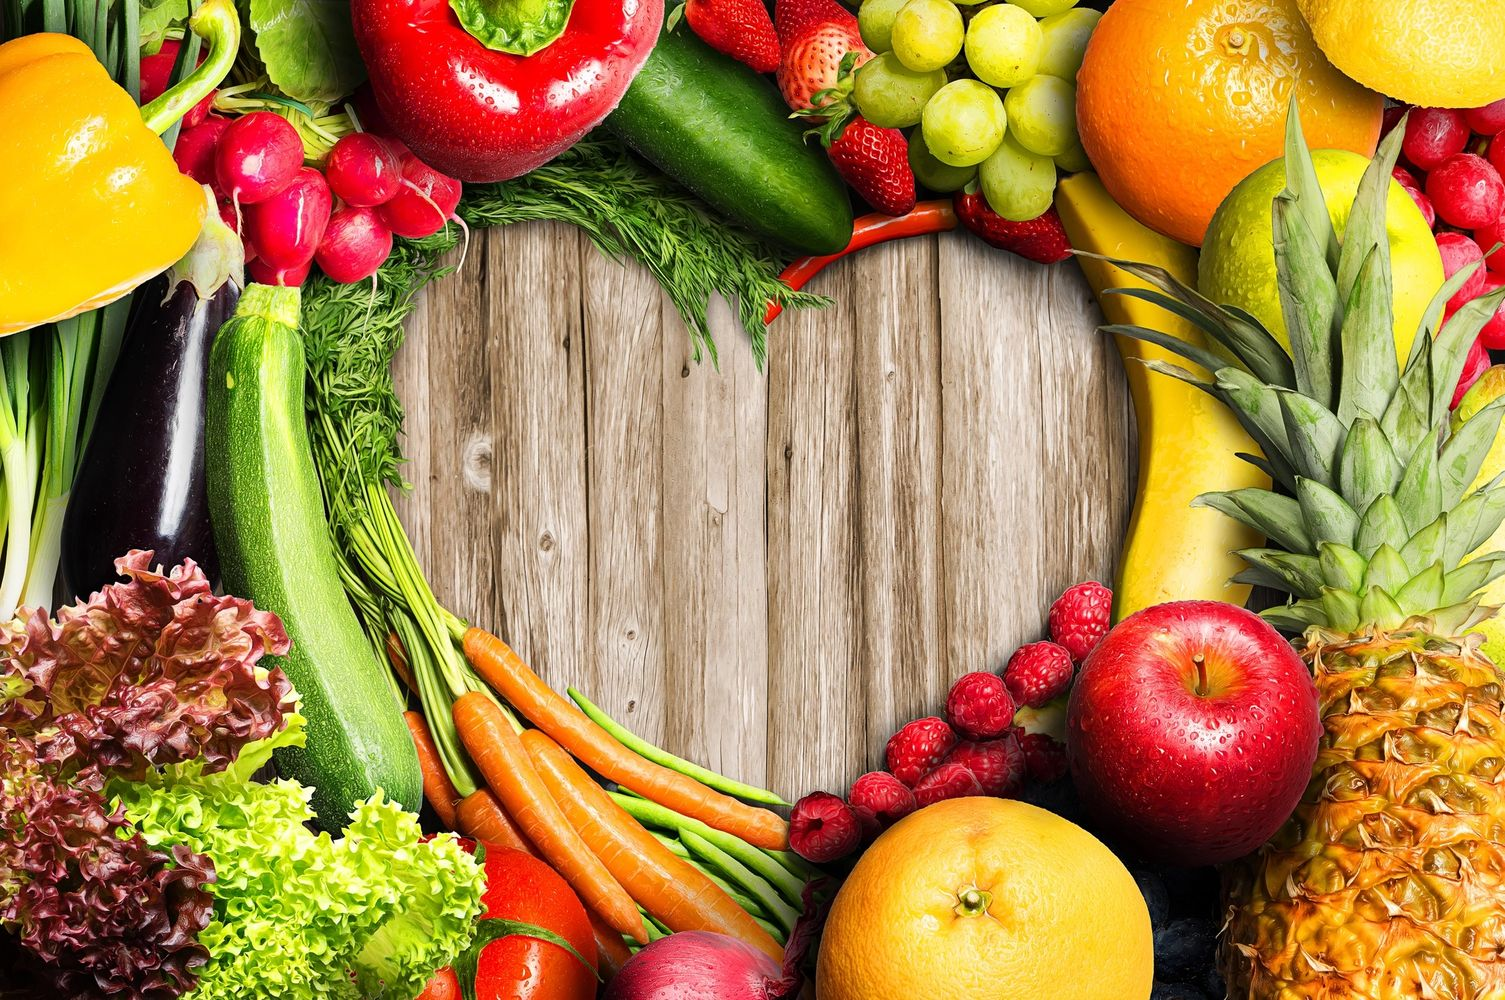 heart healthy delicious natural fresh fruit, vegetables food protect gut health, heal  body,  energy